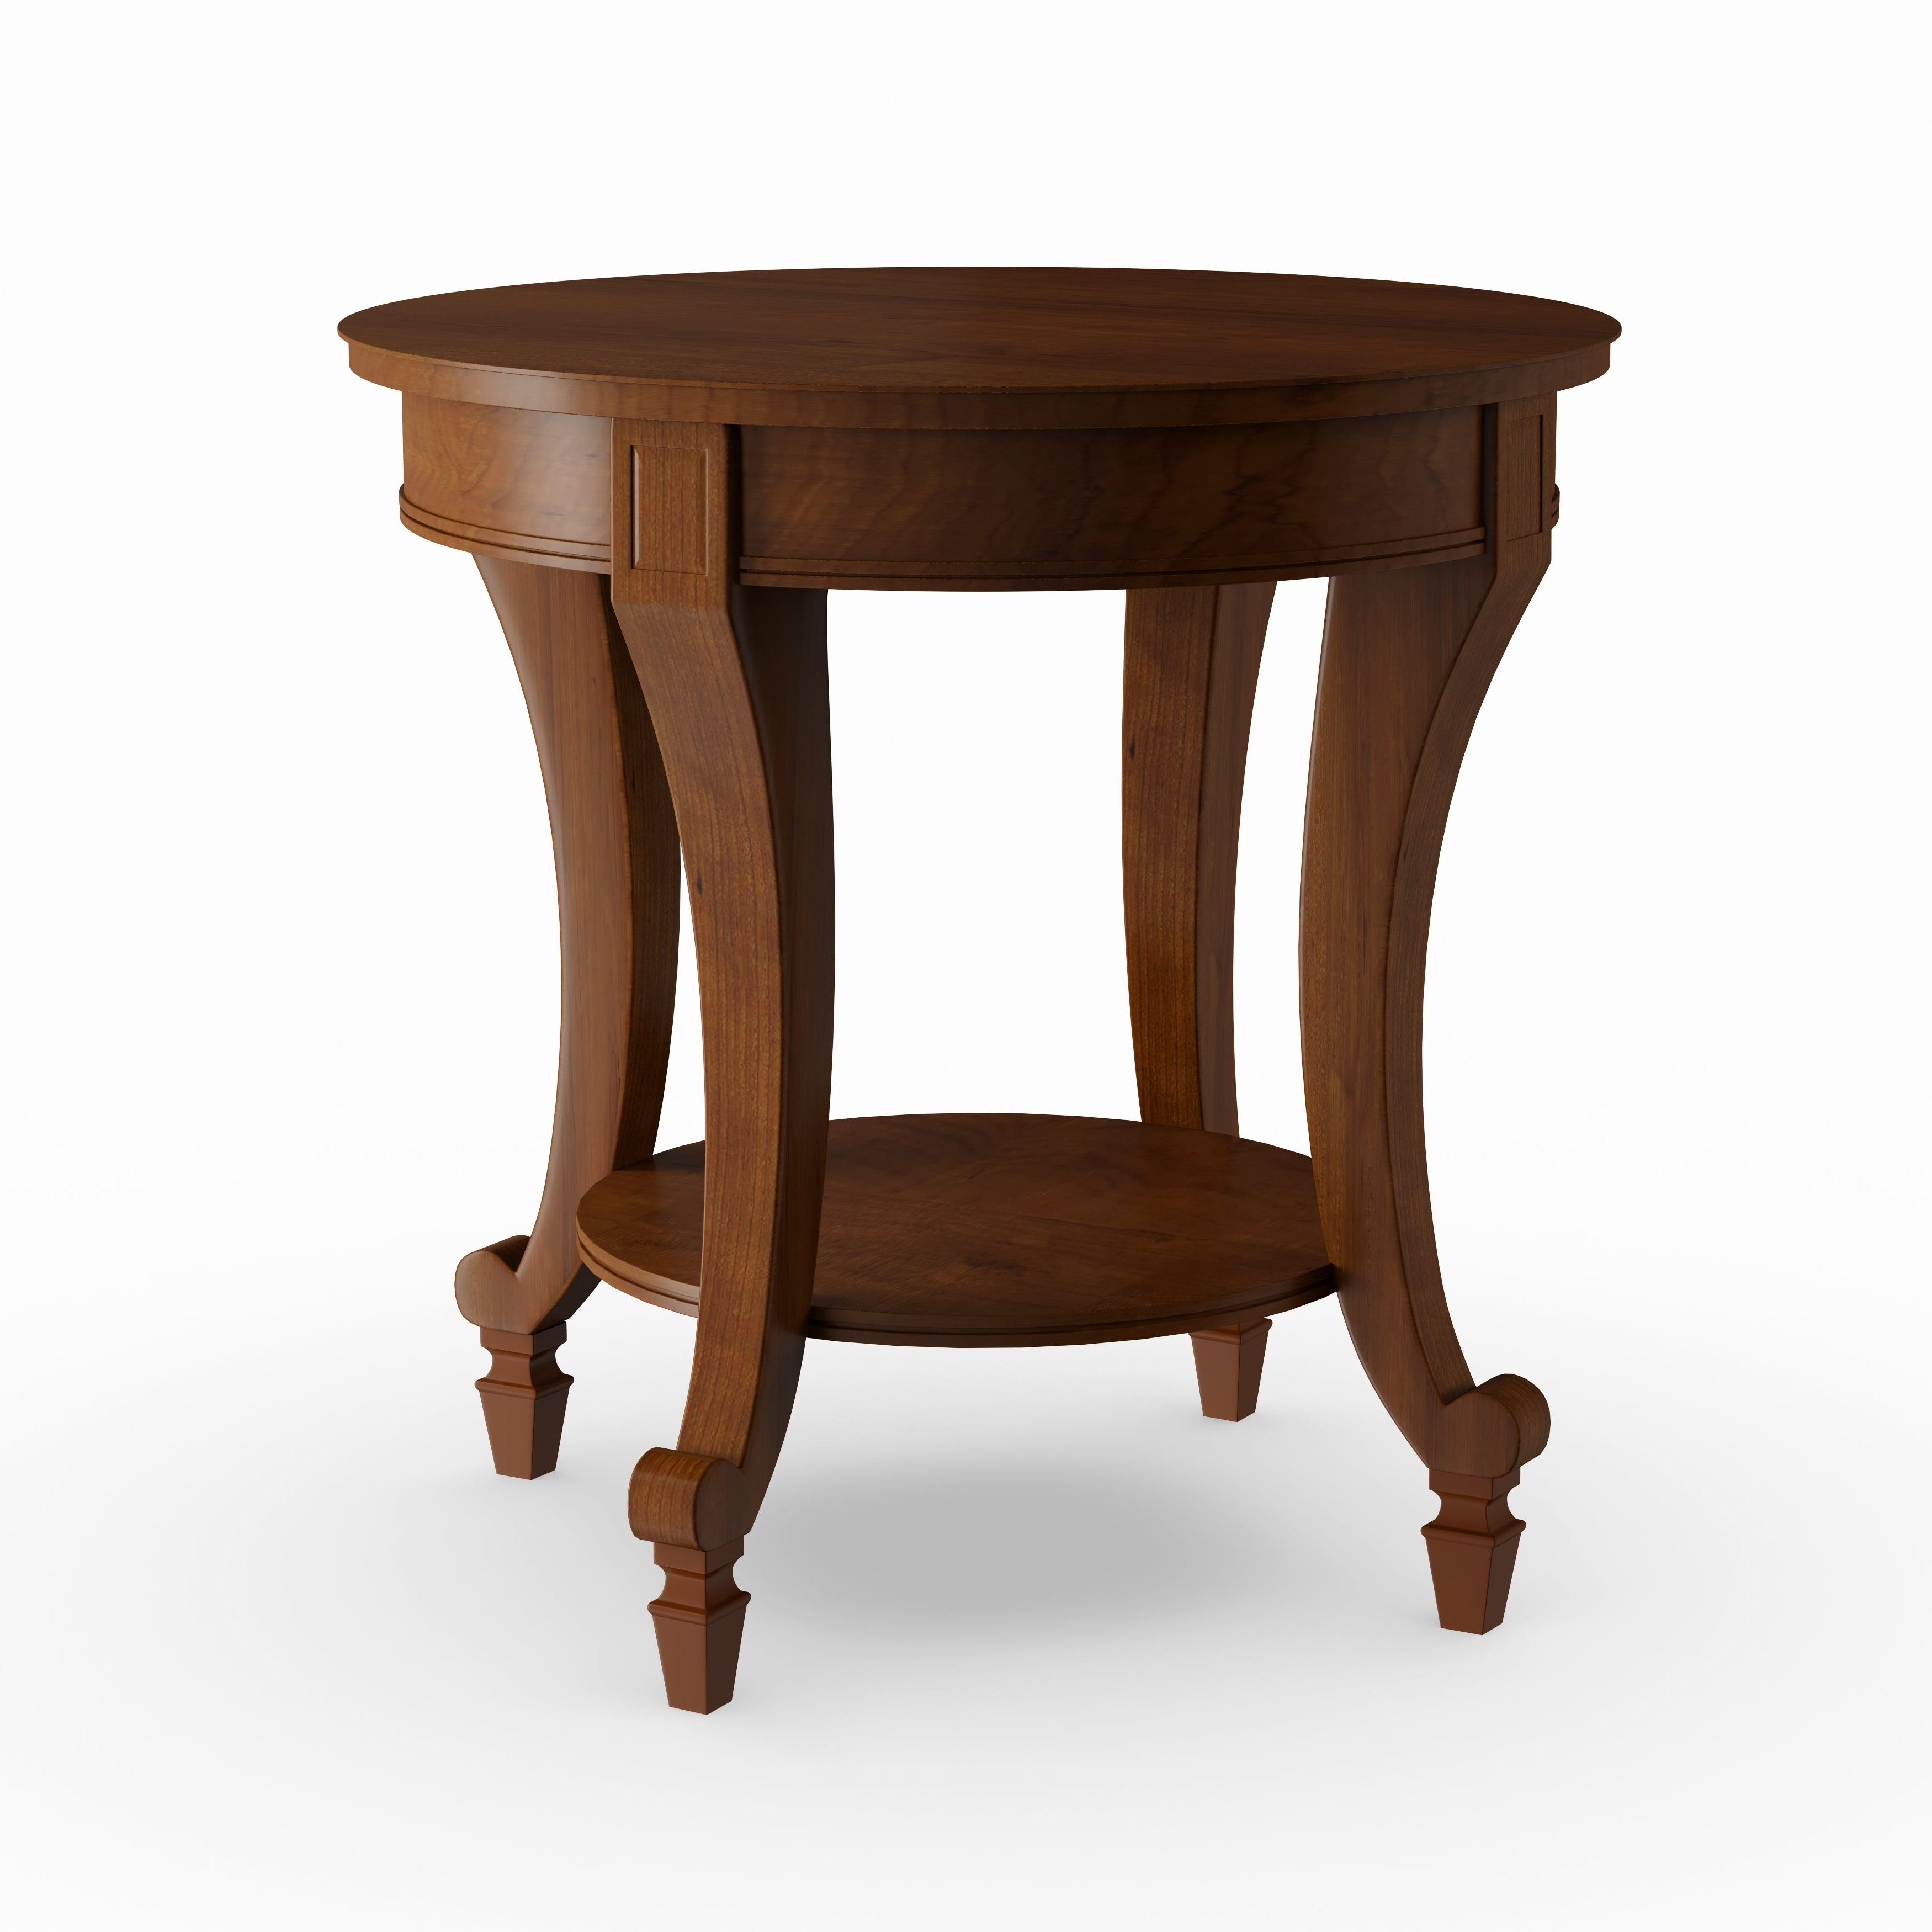 Gracewood Hollow Dones Traditional Cinnamon Round End Table Inside 2020 Gracewood Hollow Dones Traditional Cinnamon Round End Tables (Gallery 2 of 20)